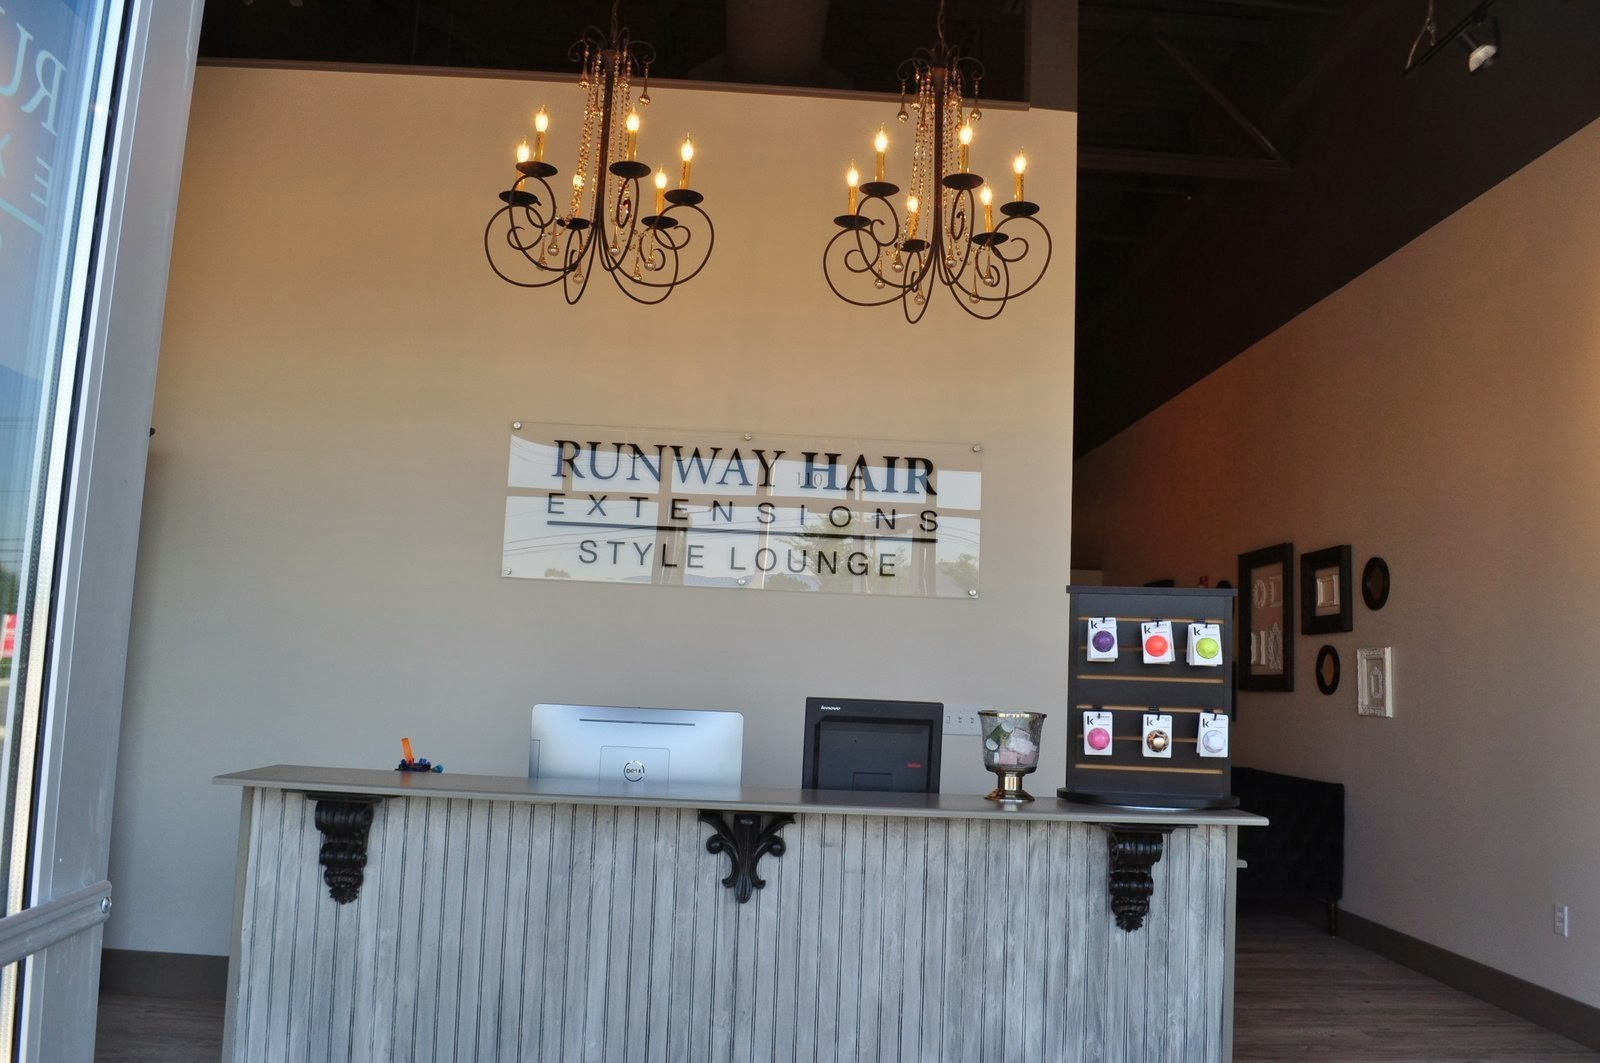 Runway Hair Extensions Style Lounge